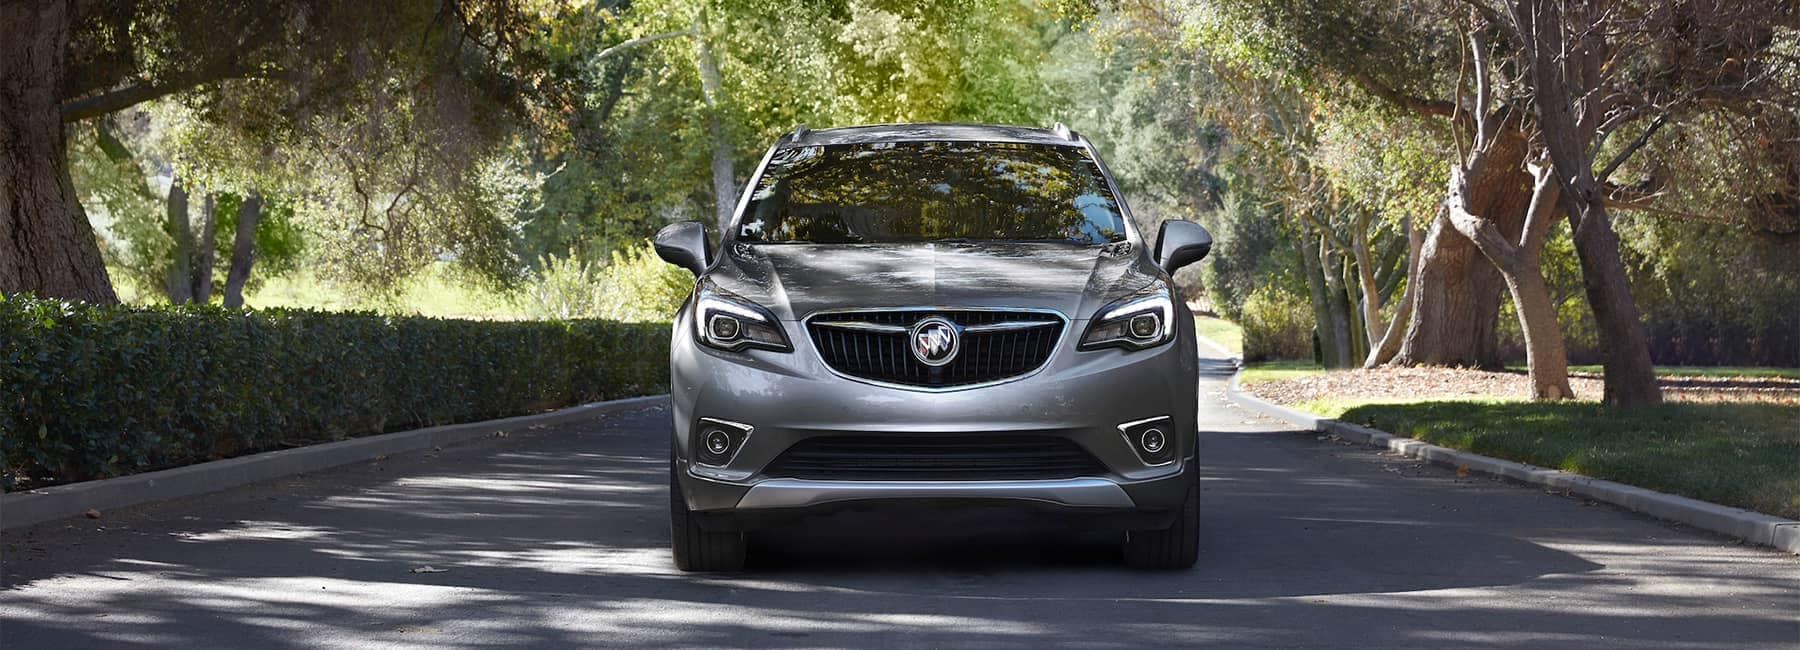 2020 Buick Envision Compact SUV Front Grille Exterior